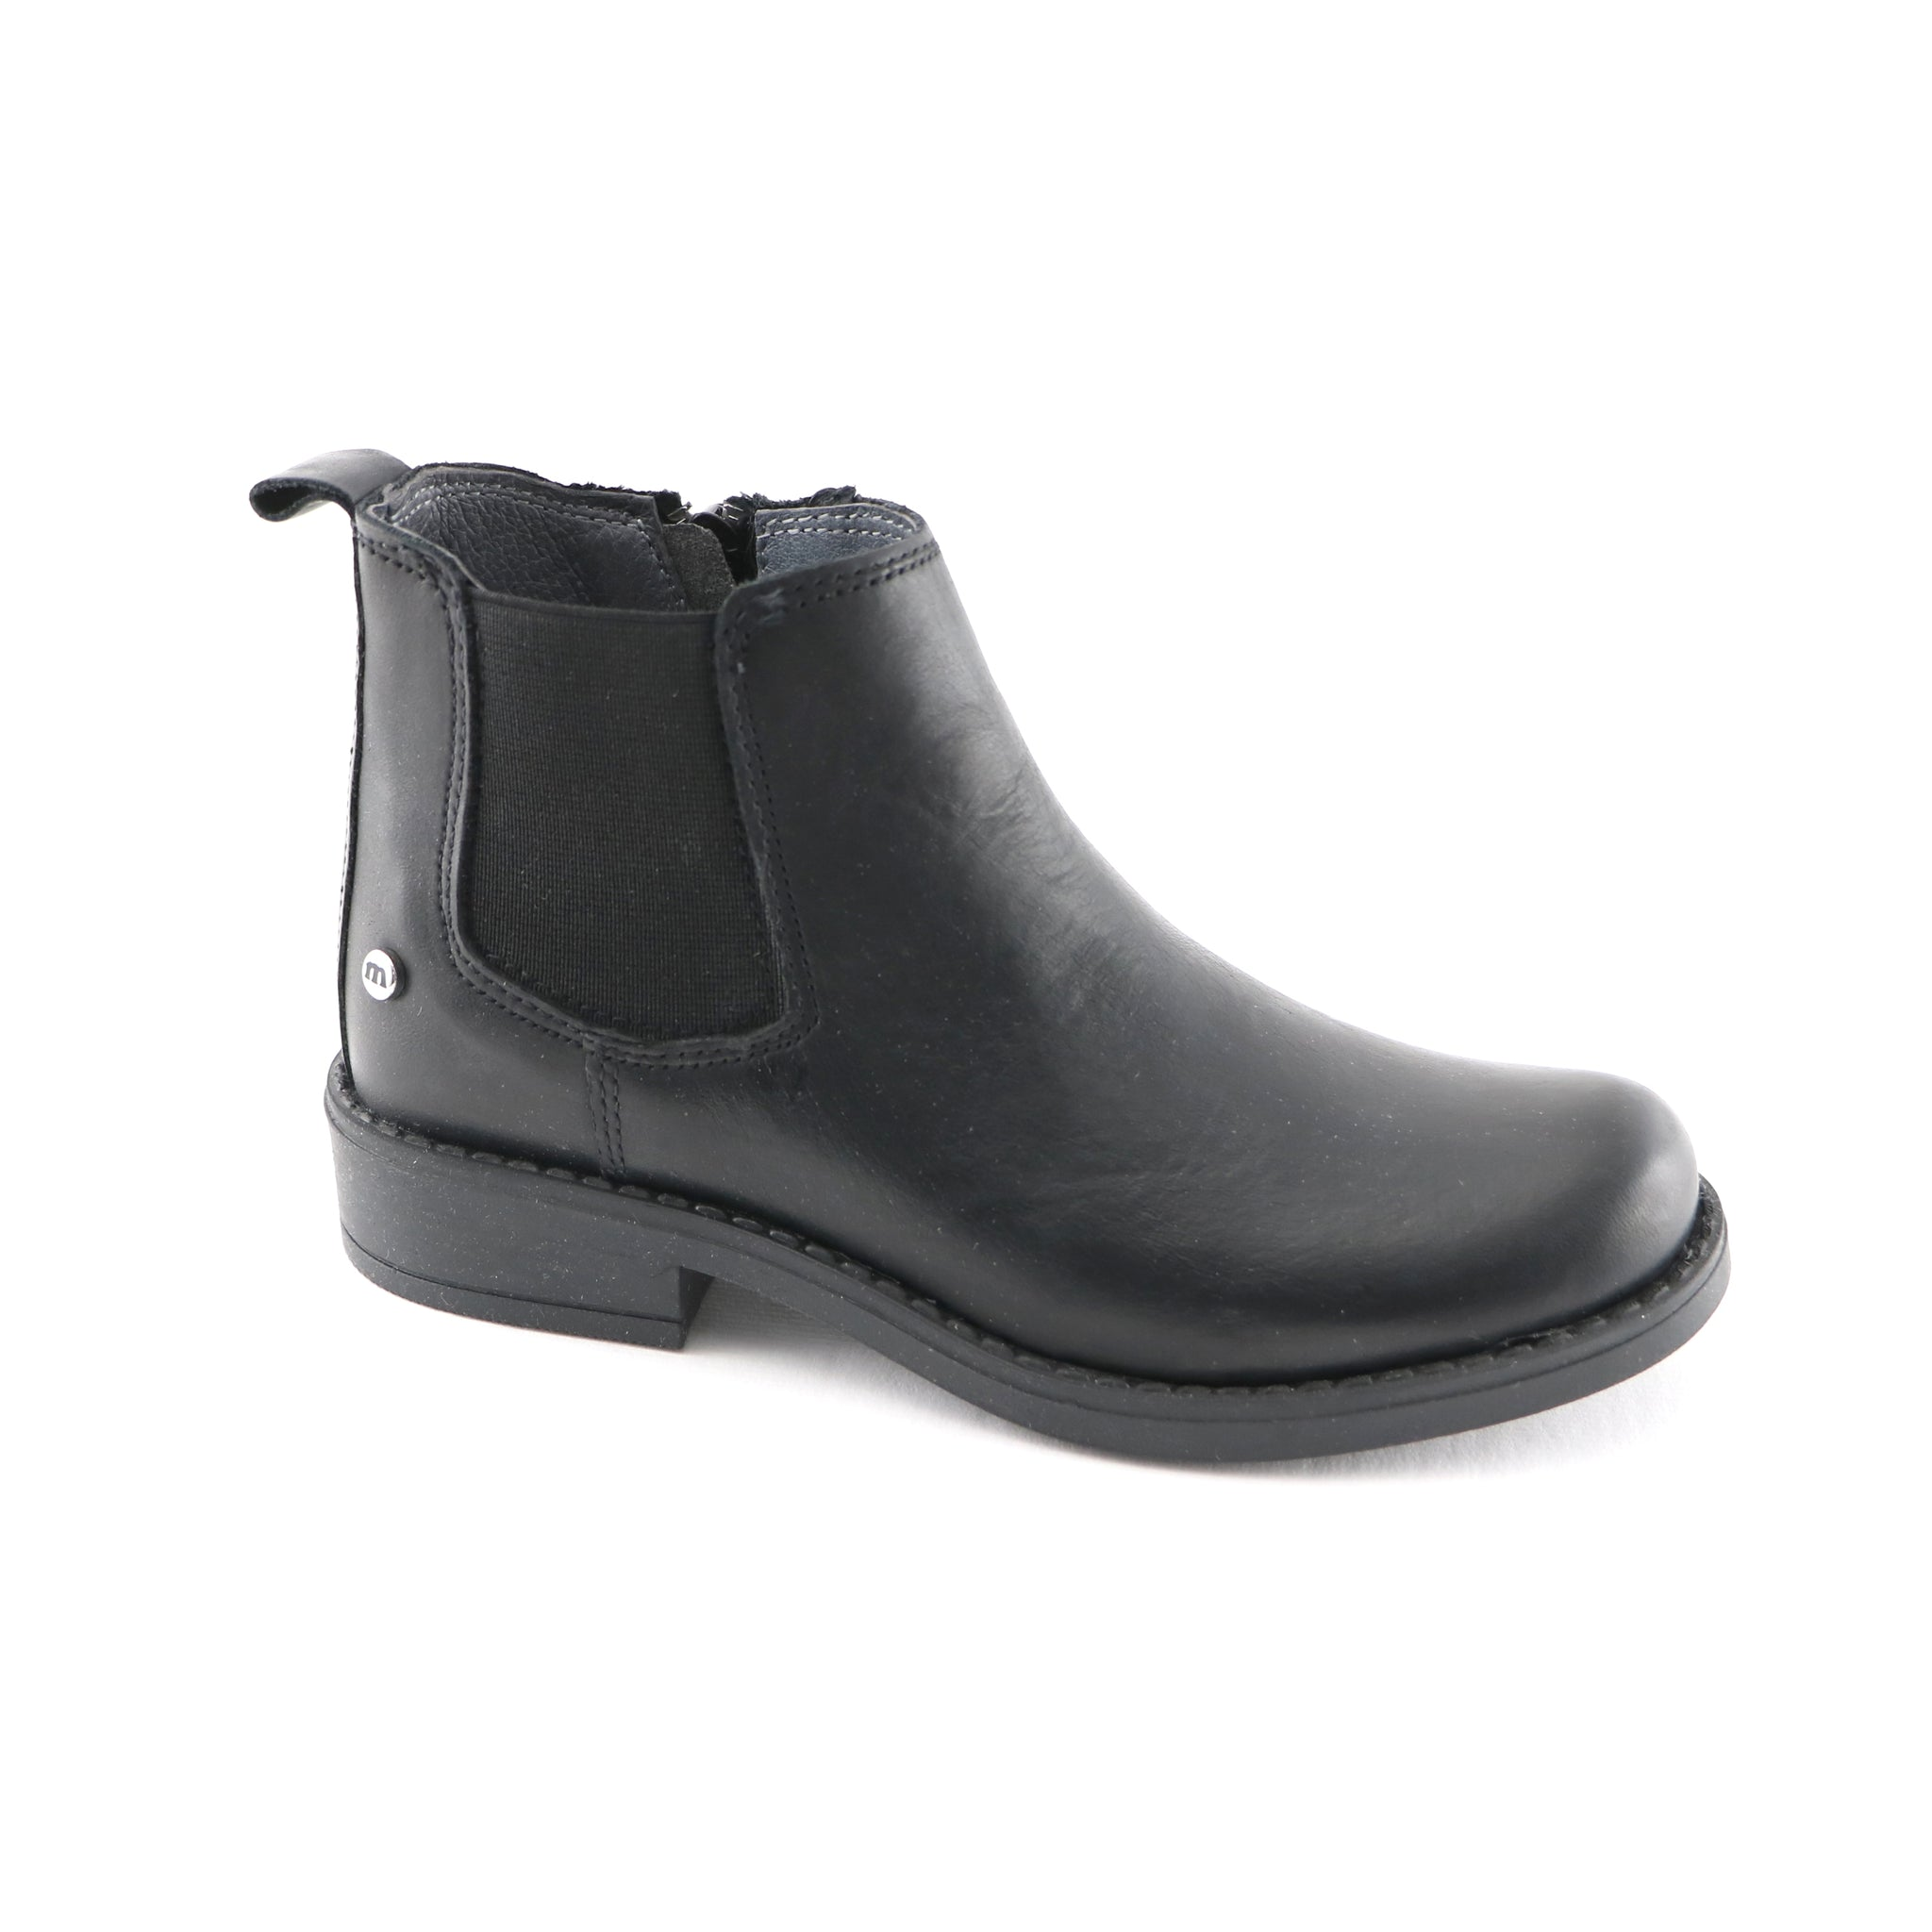 Black Leather Girls Ankle Boots Ss-7125  Simply Shoes Hong Kong-1331